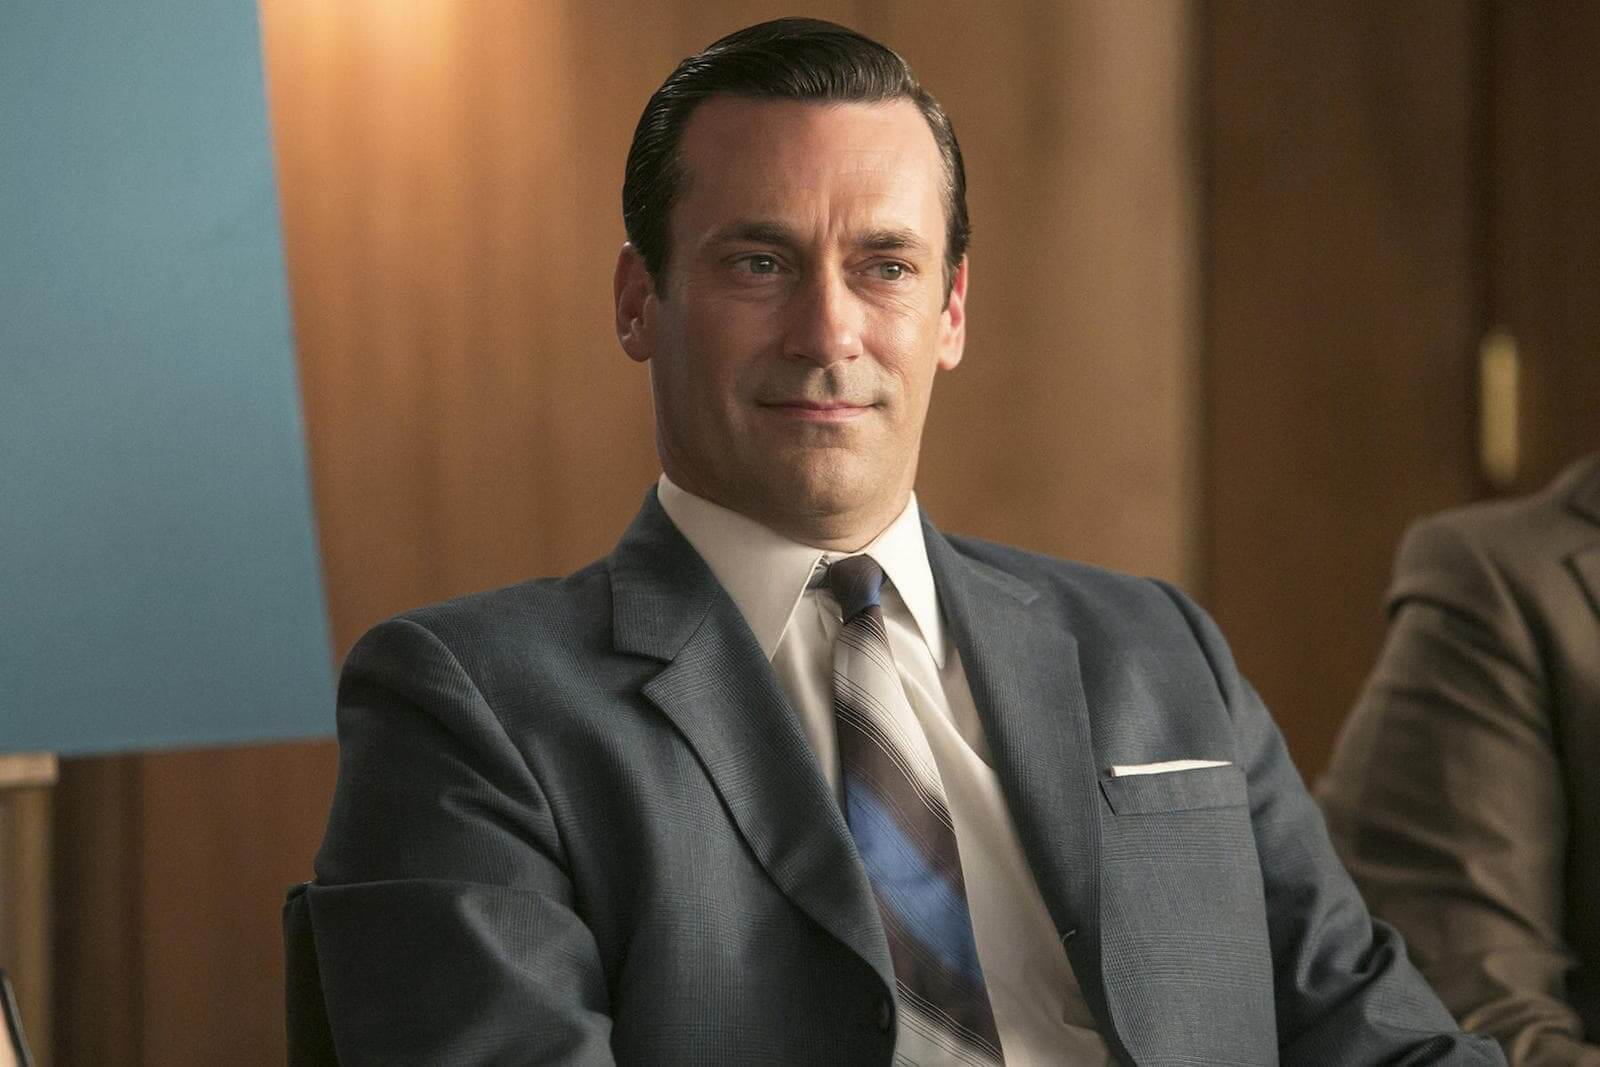 Ethos Definition - Ethos Advertisement - Mad Men - Don Draper